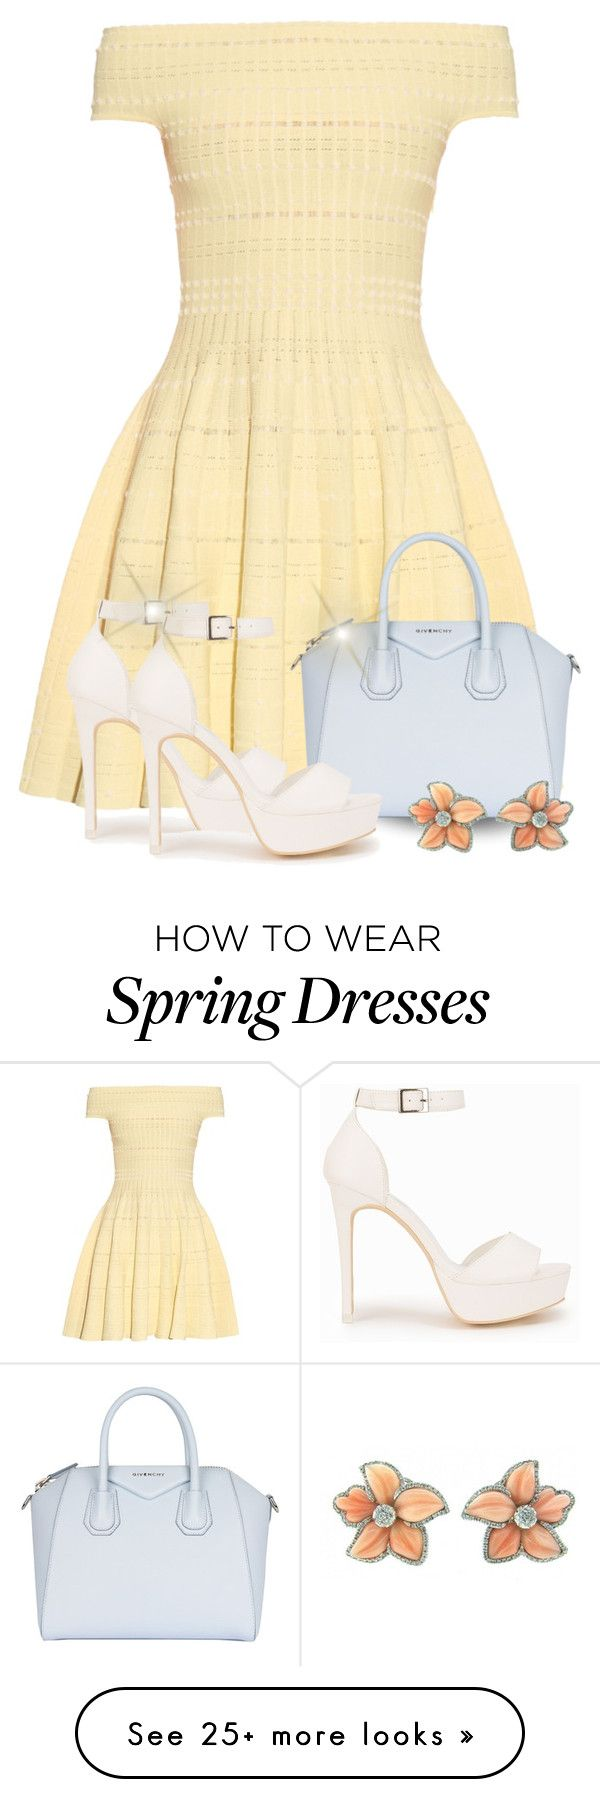 """Spring Dress"" by majezy on Polyvore featuring Alexander McQueen, Givenchy and Nly Shoes"